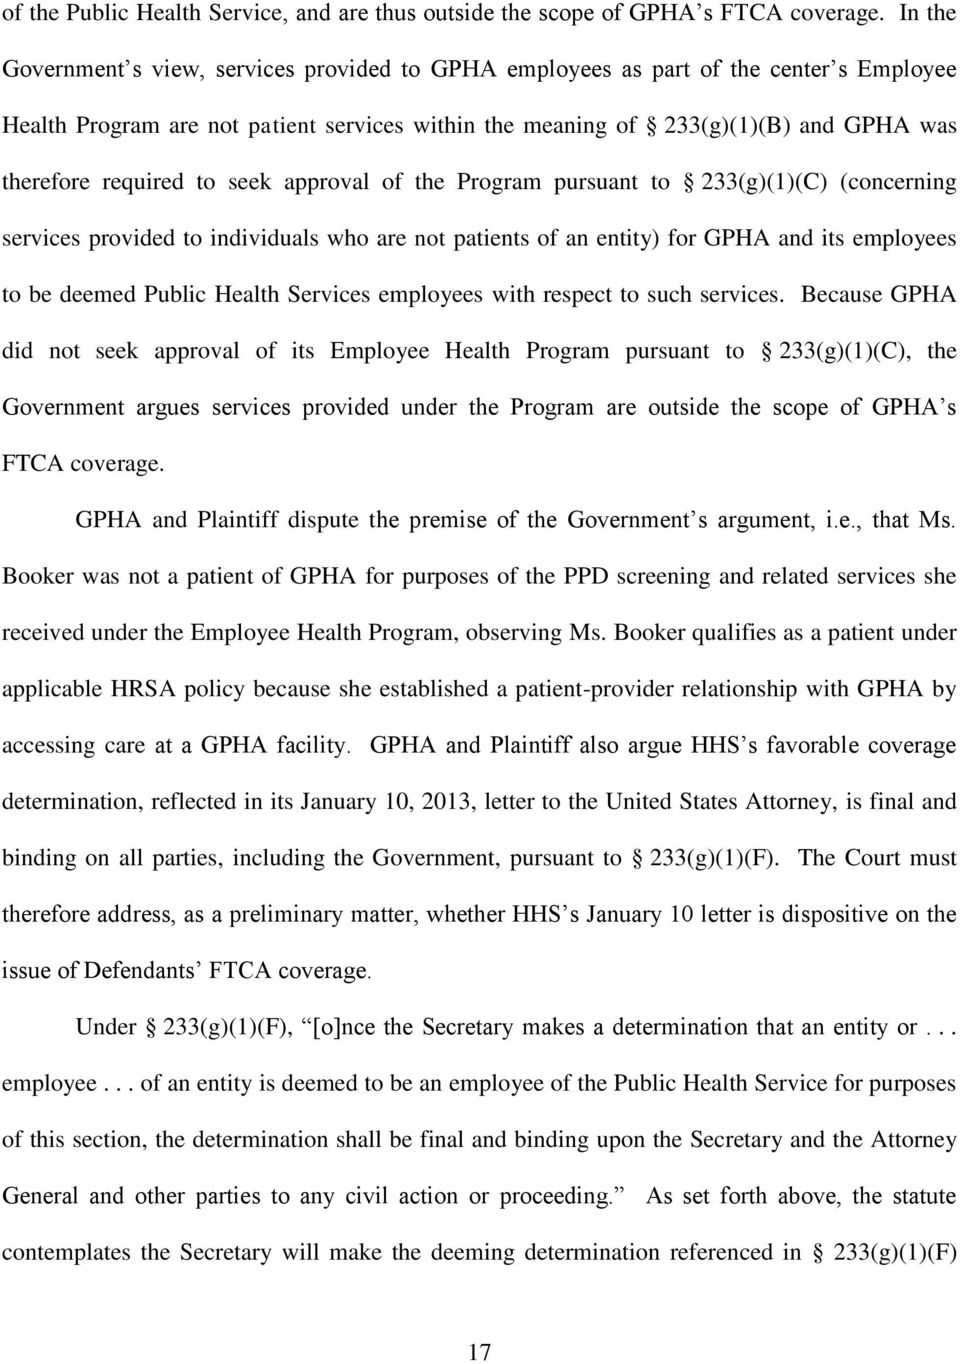 required to seek approval of the Program pursuant to 233(g)(1)(C) (concerning services provided to individuals who are not patients of an entity) for GPHA and its employees to be deemed Public Health